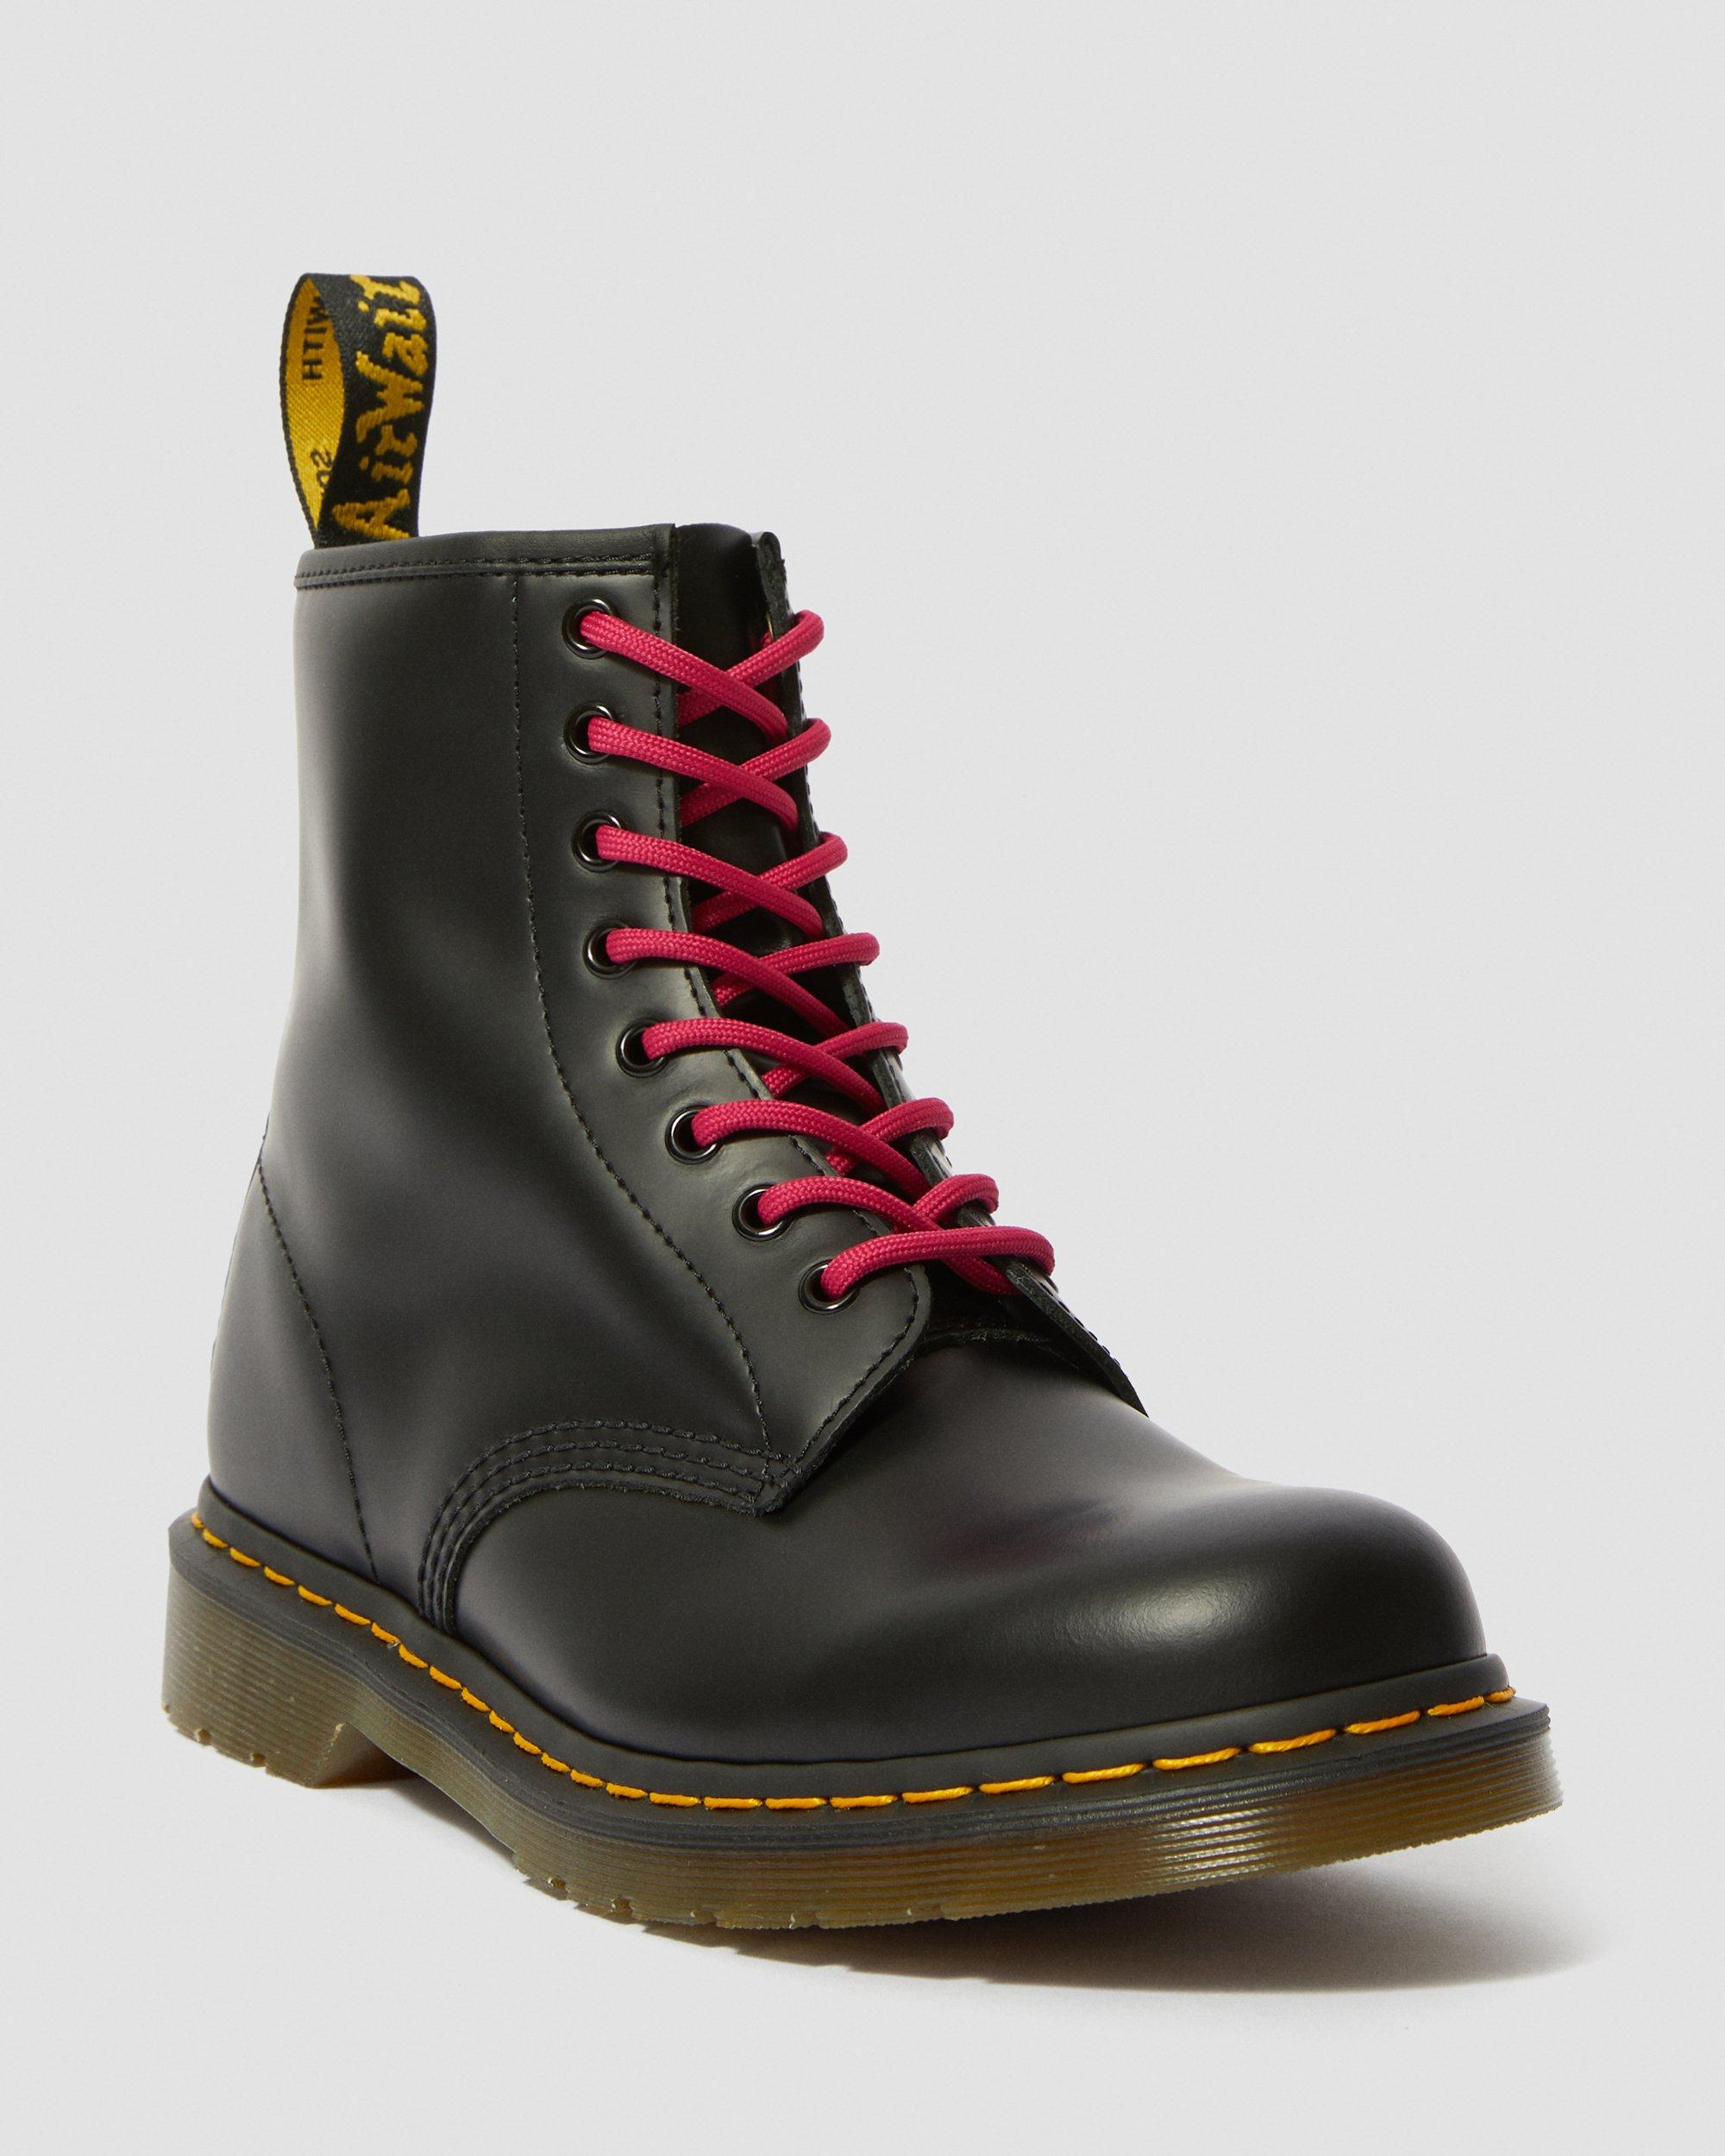 8-10 Eye Round Lace   Dr. Martens